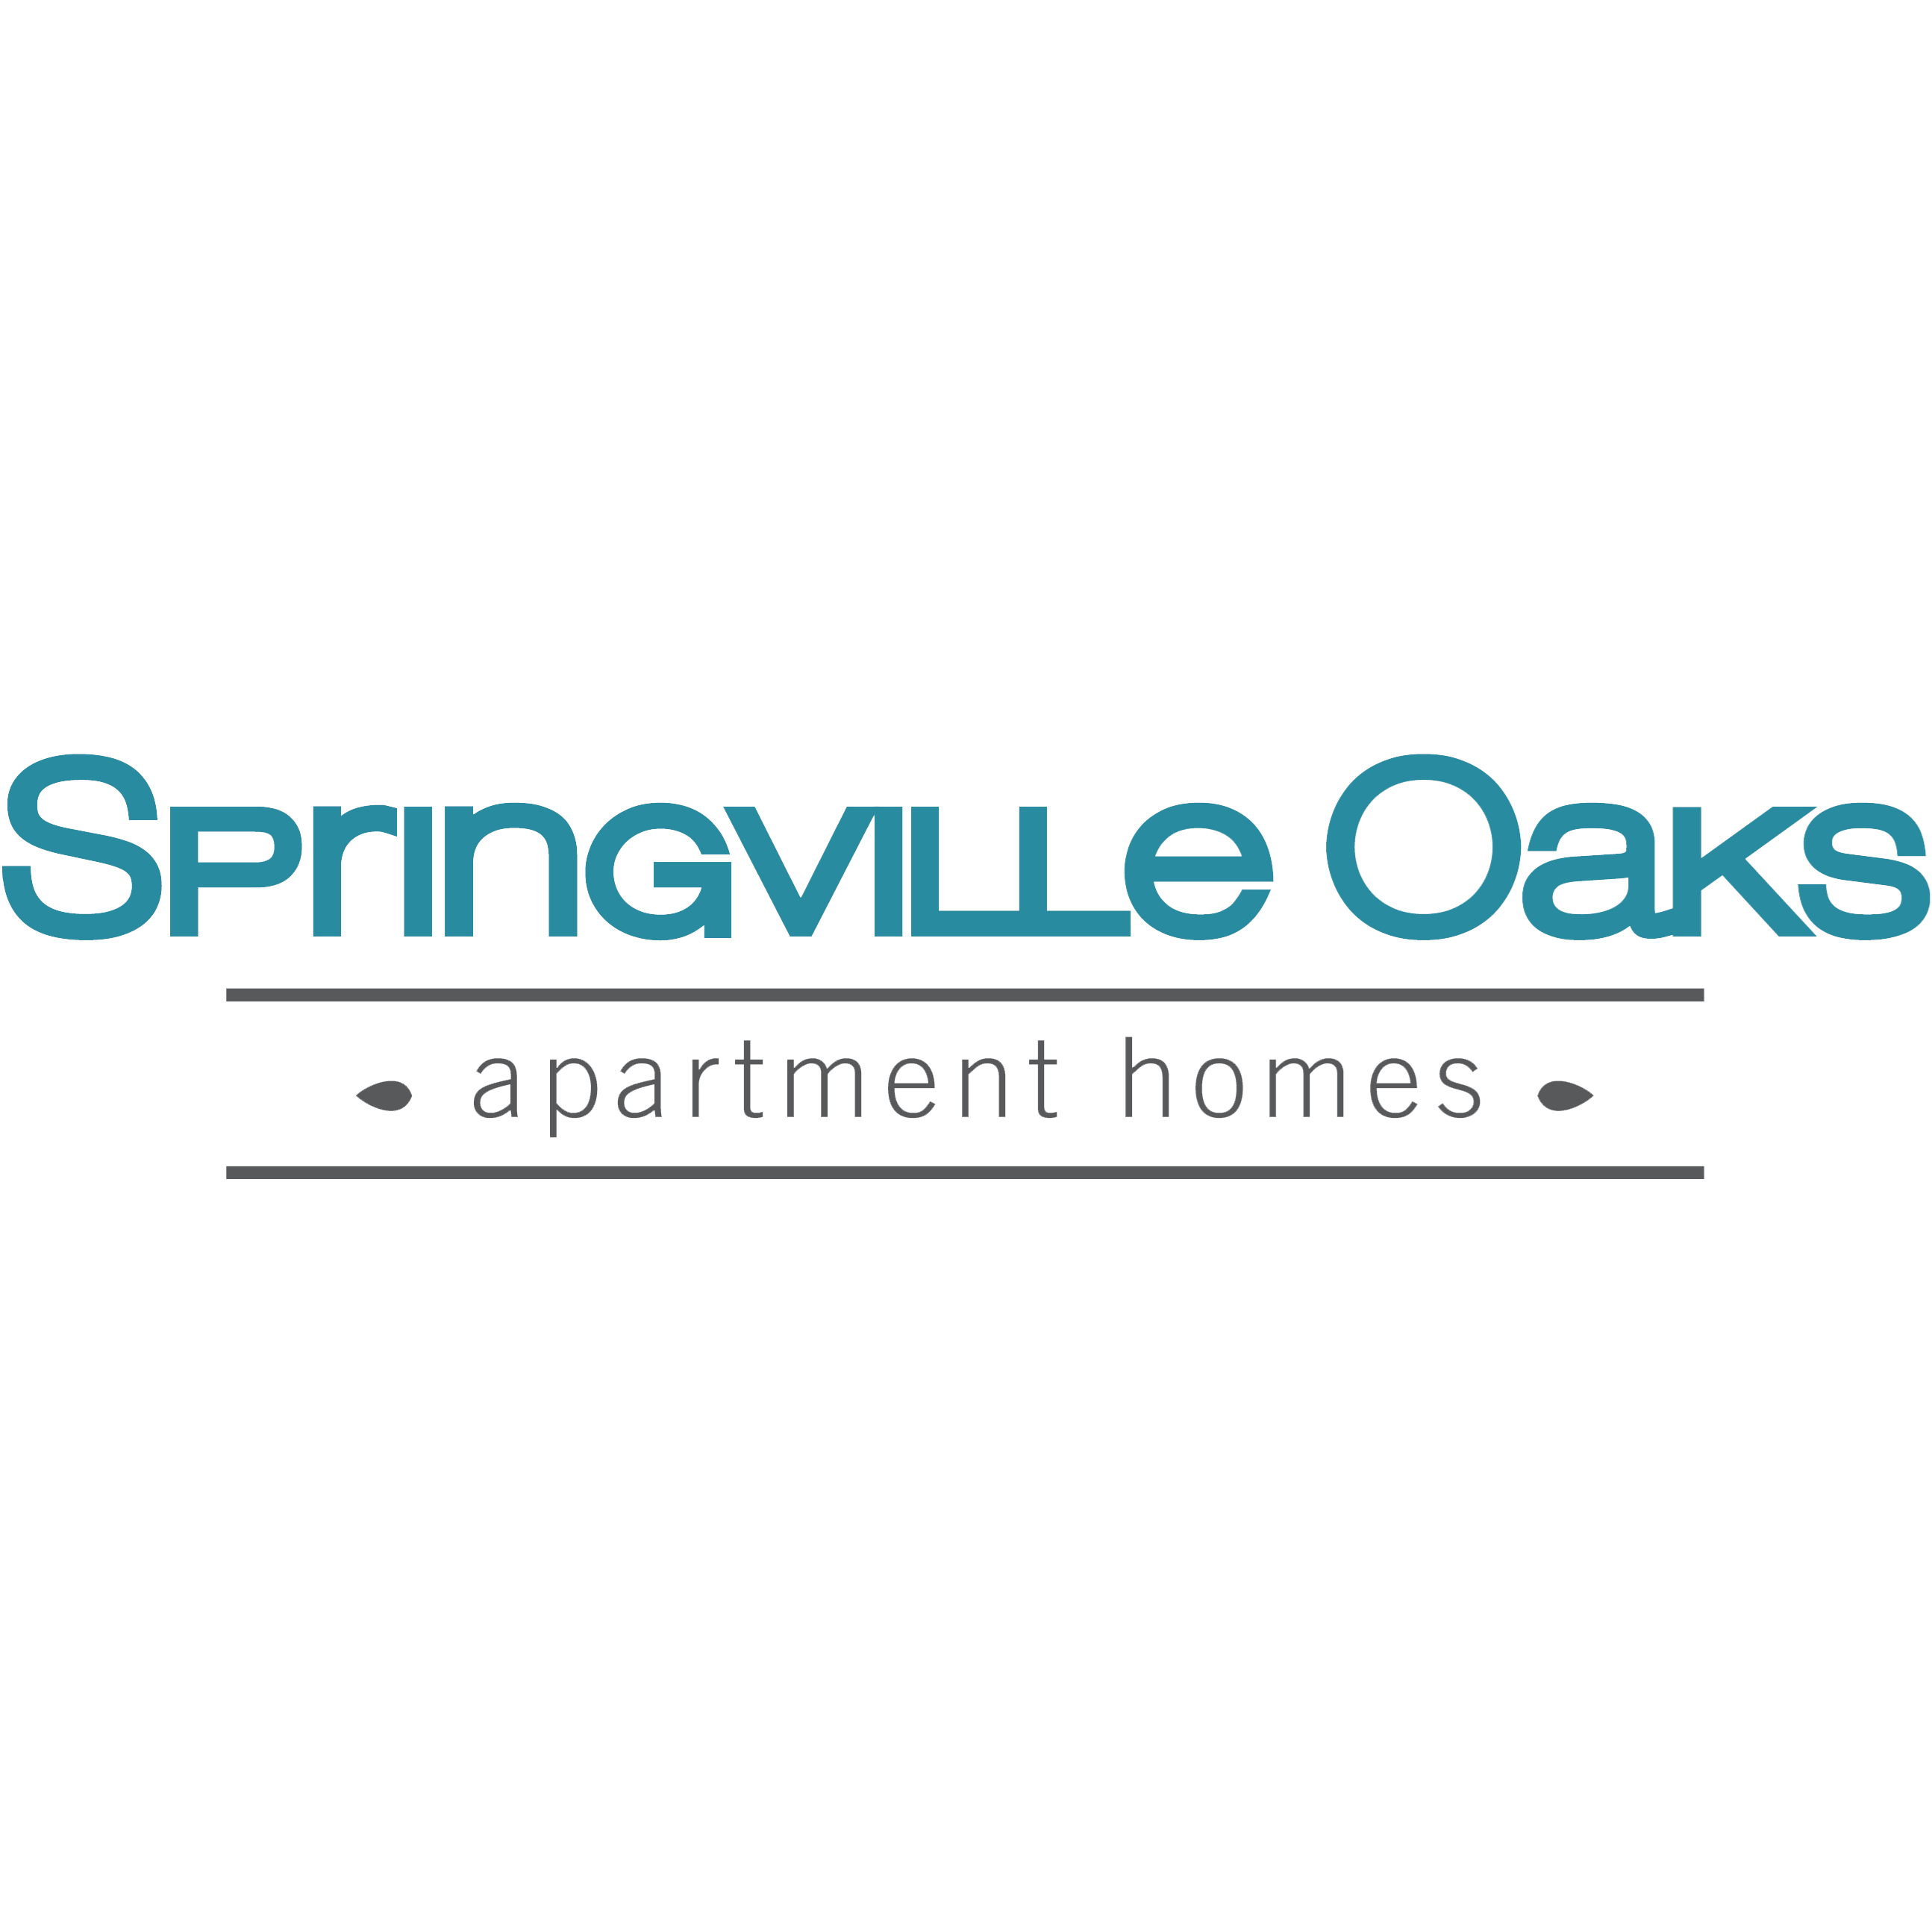 Springville Oaks Apartment Homes